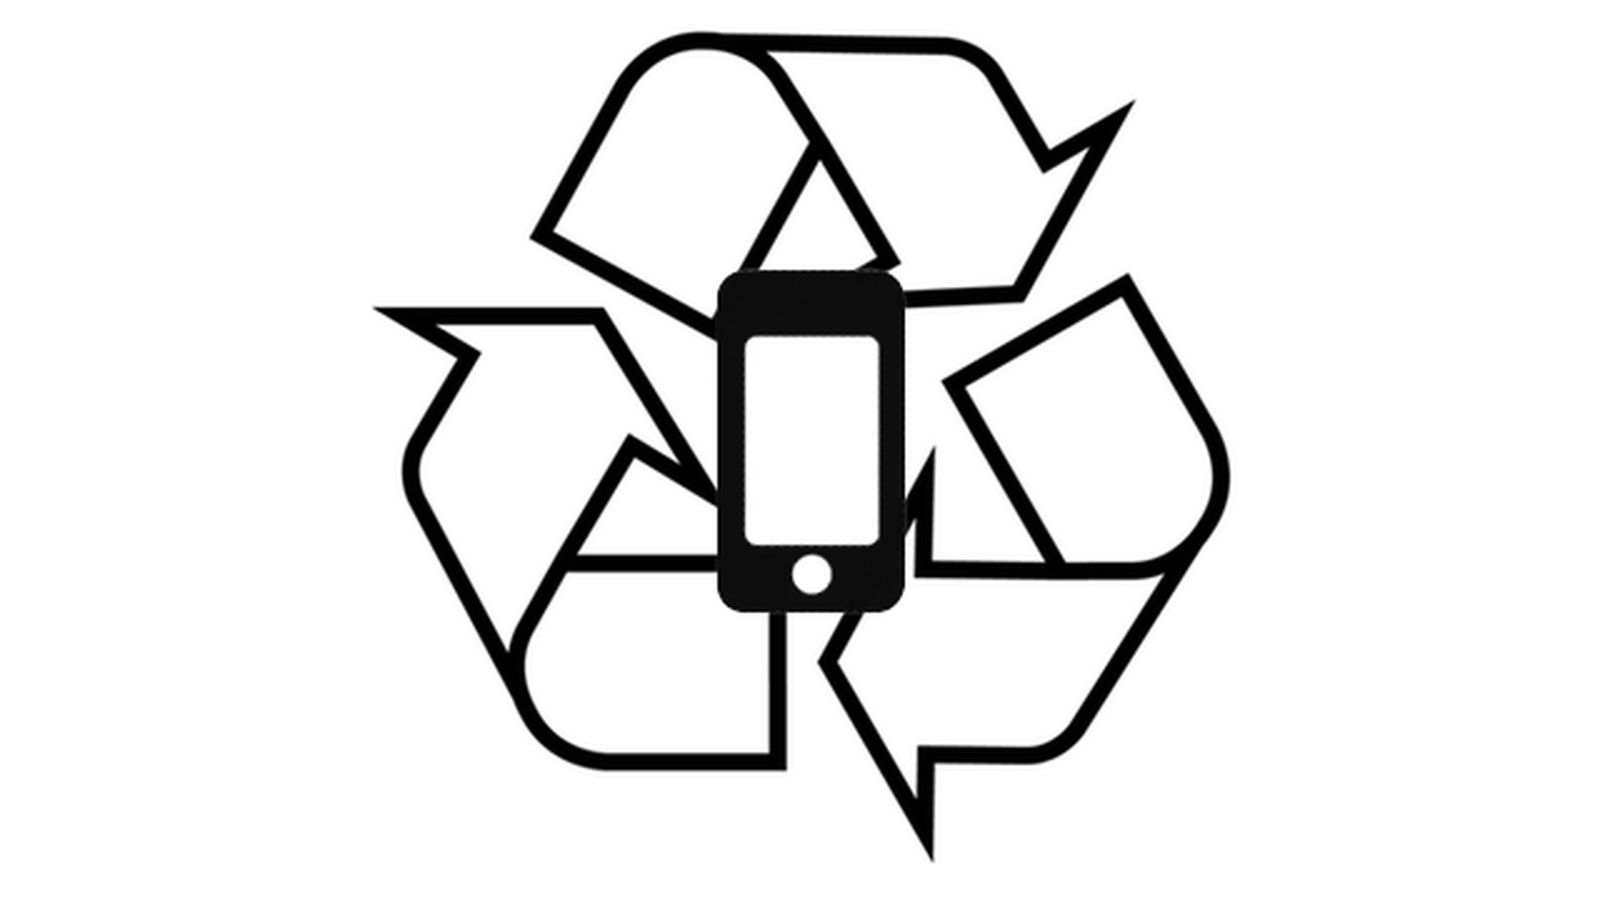 Apple extends recycling offer to iPhone, will help fund